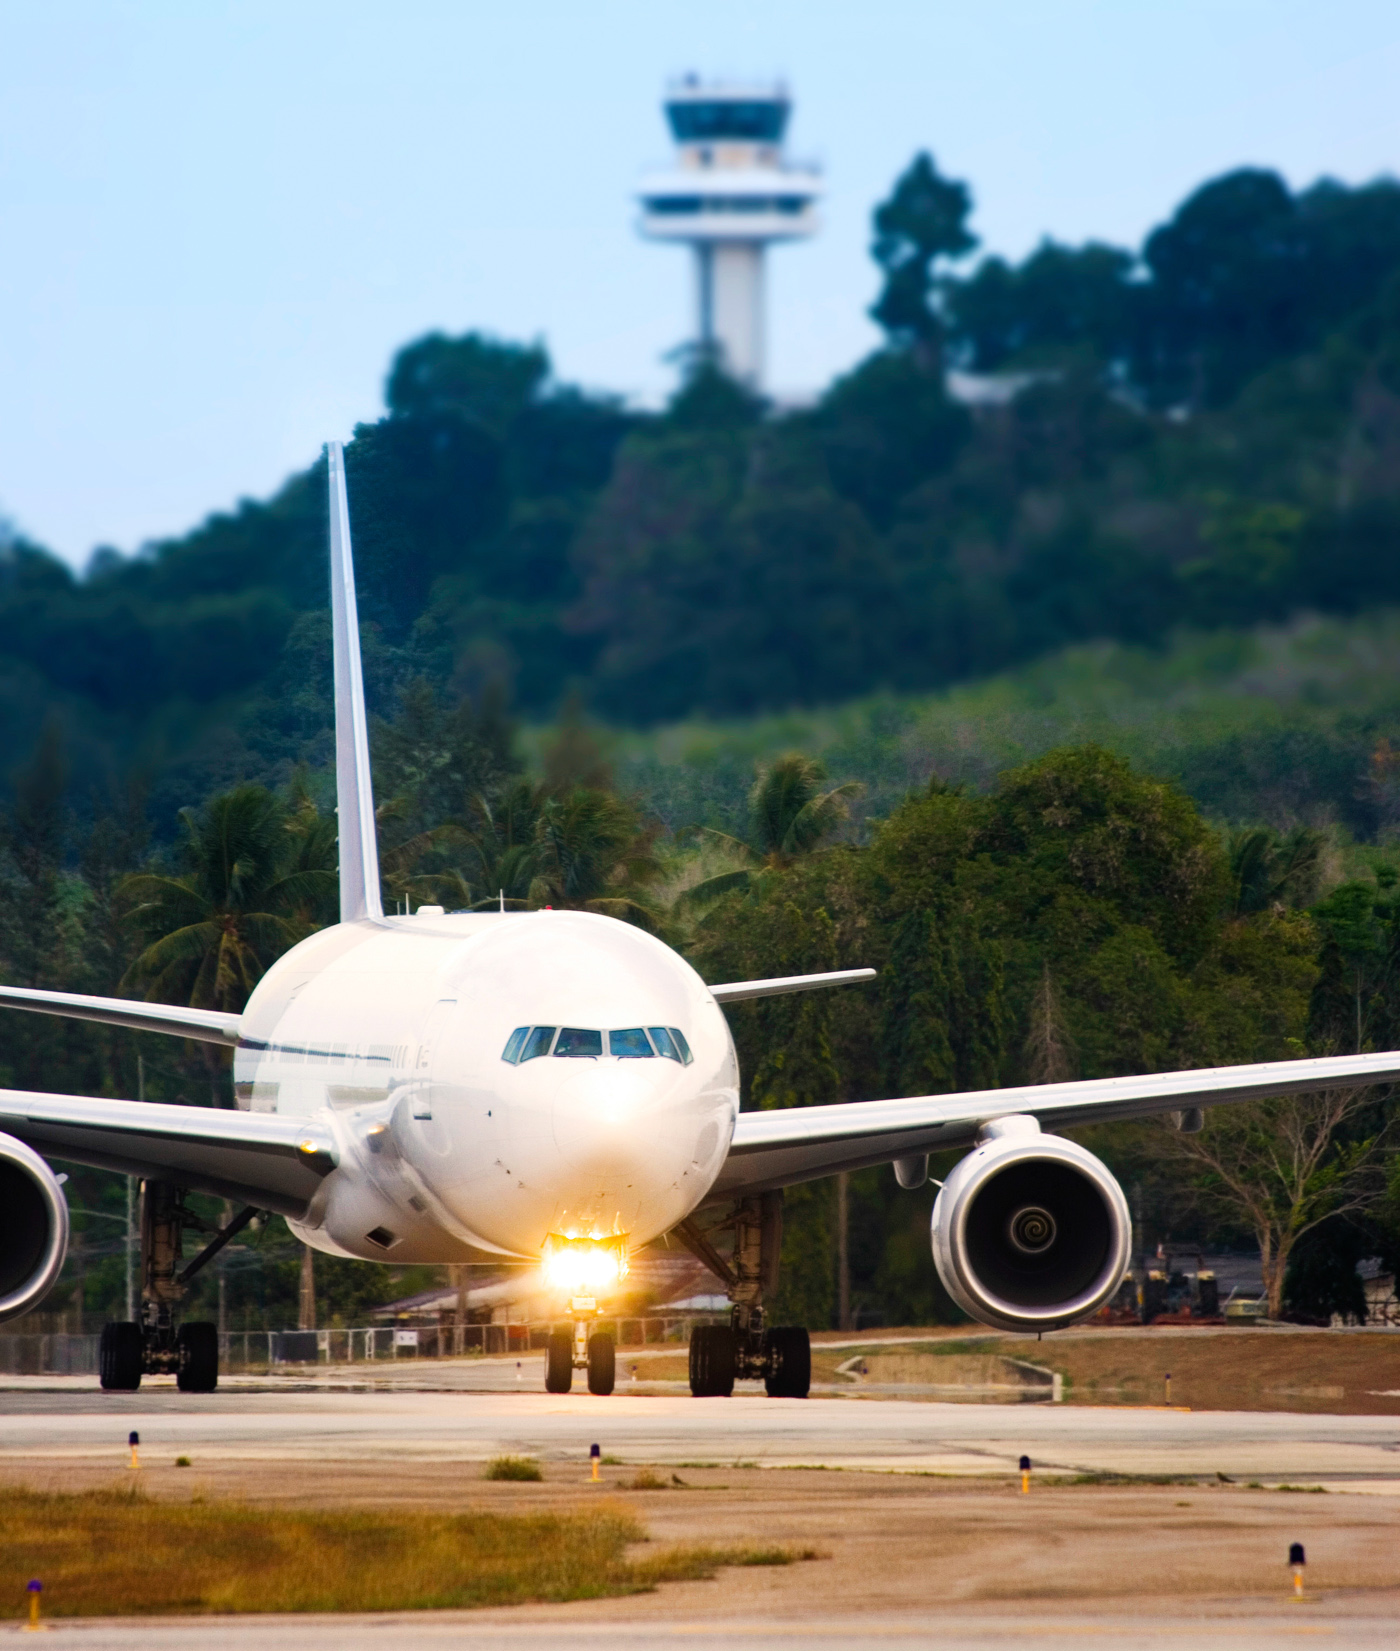 Airplane taxiing ready for takeoff photo